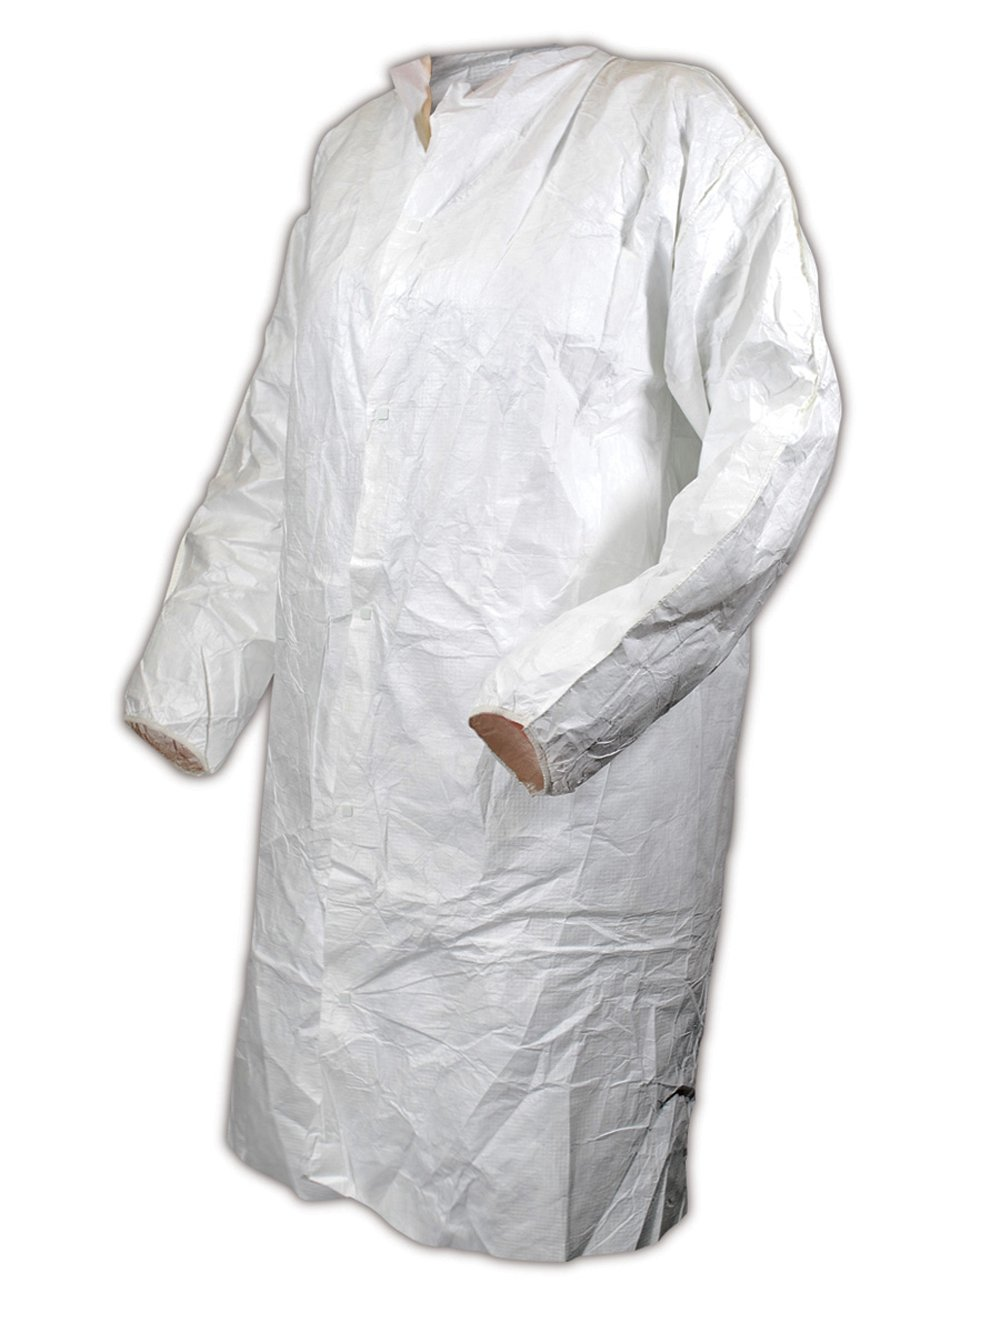 Magid CC111L EconoWear Tyvek Disposable Lab Coat, Large, White (Case of 30)